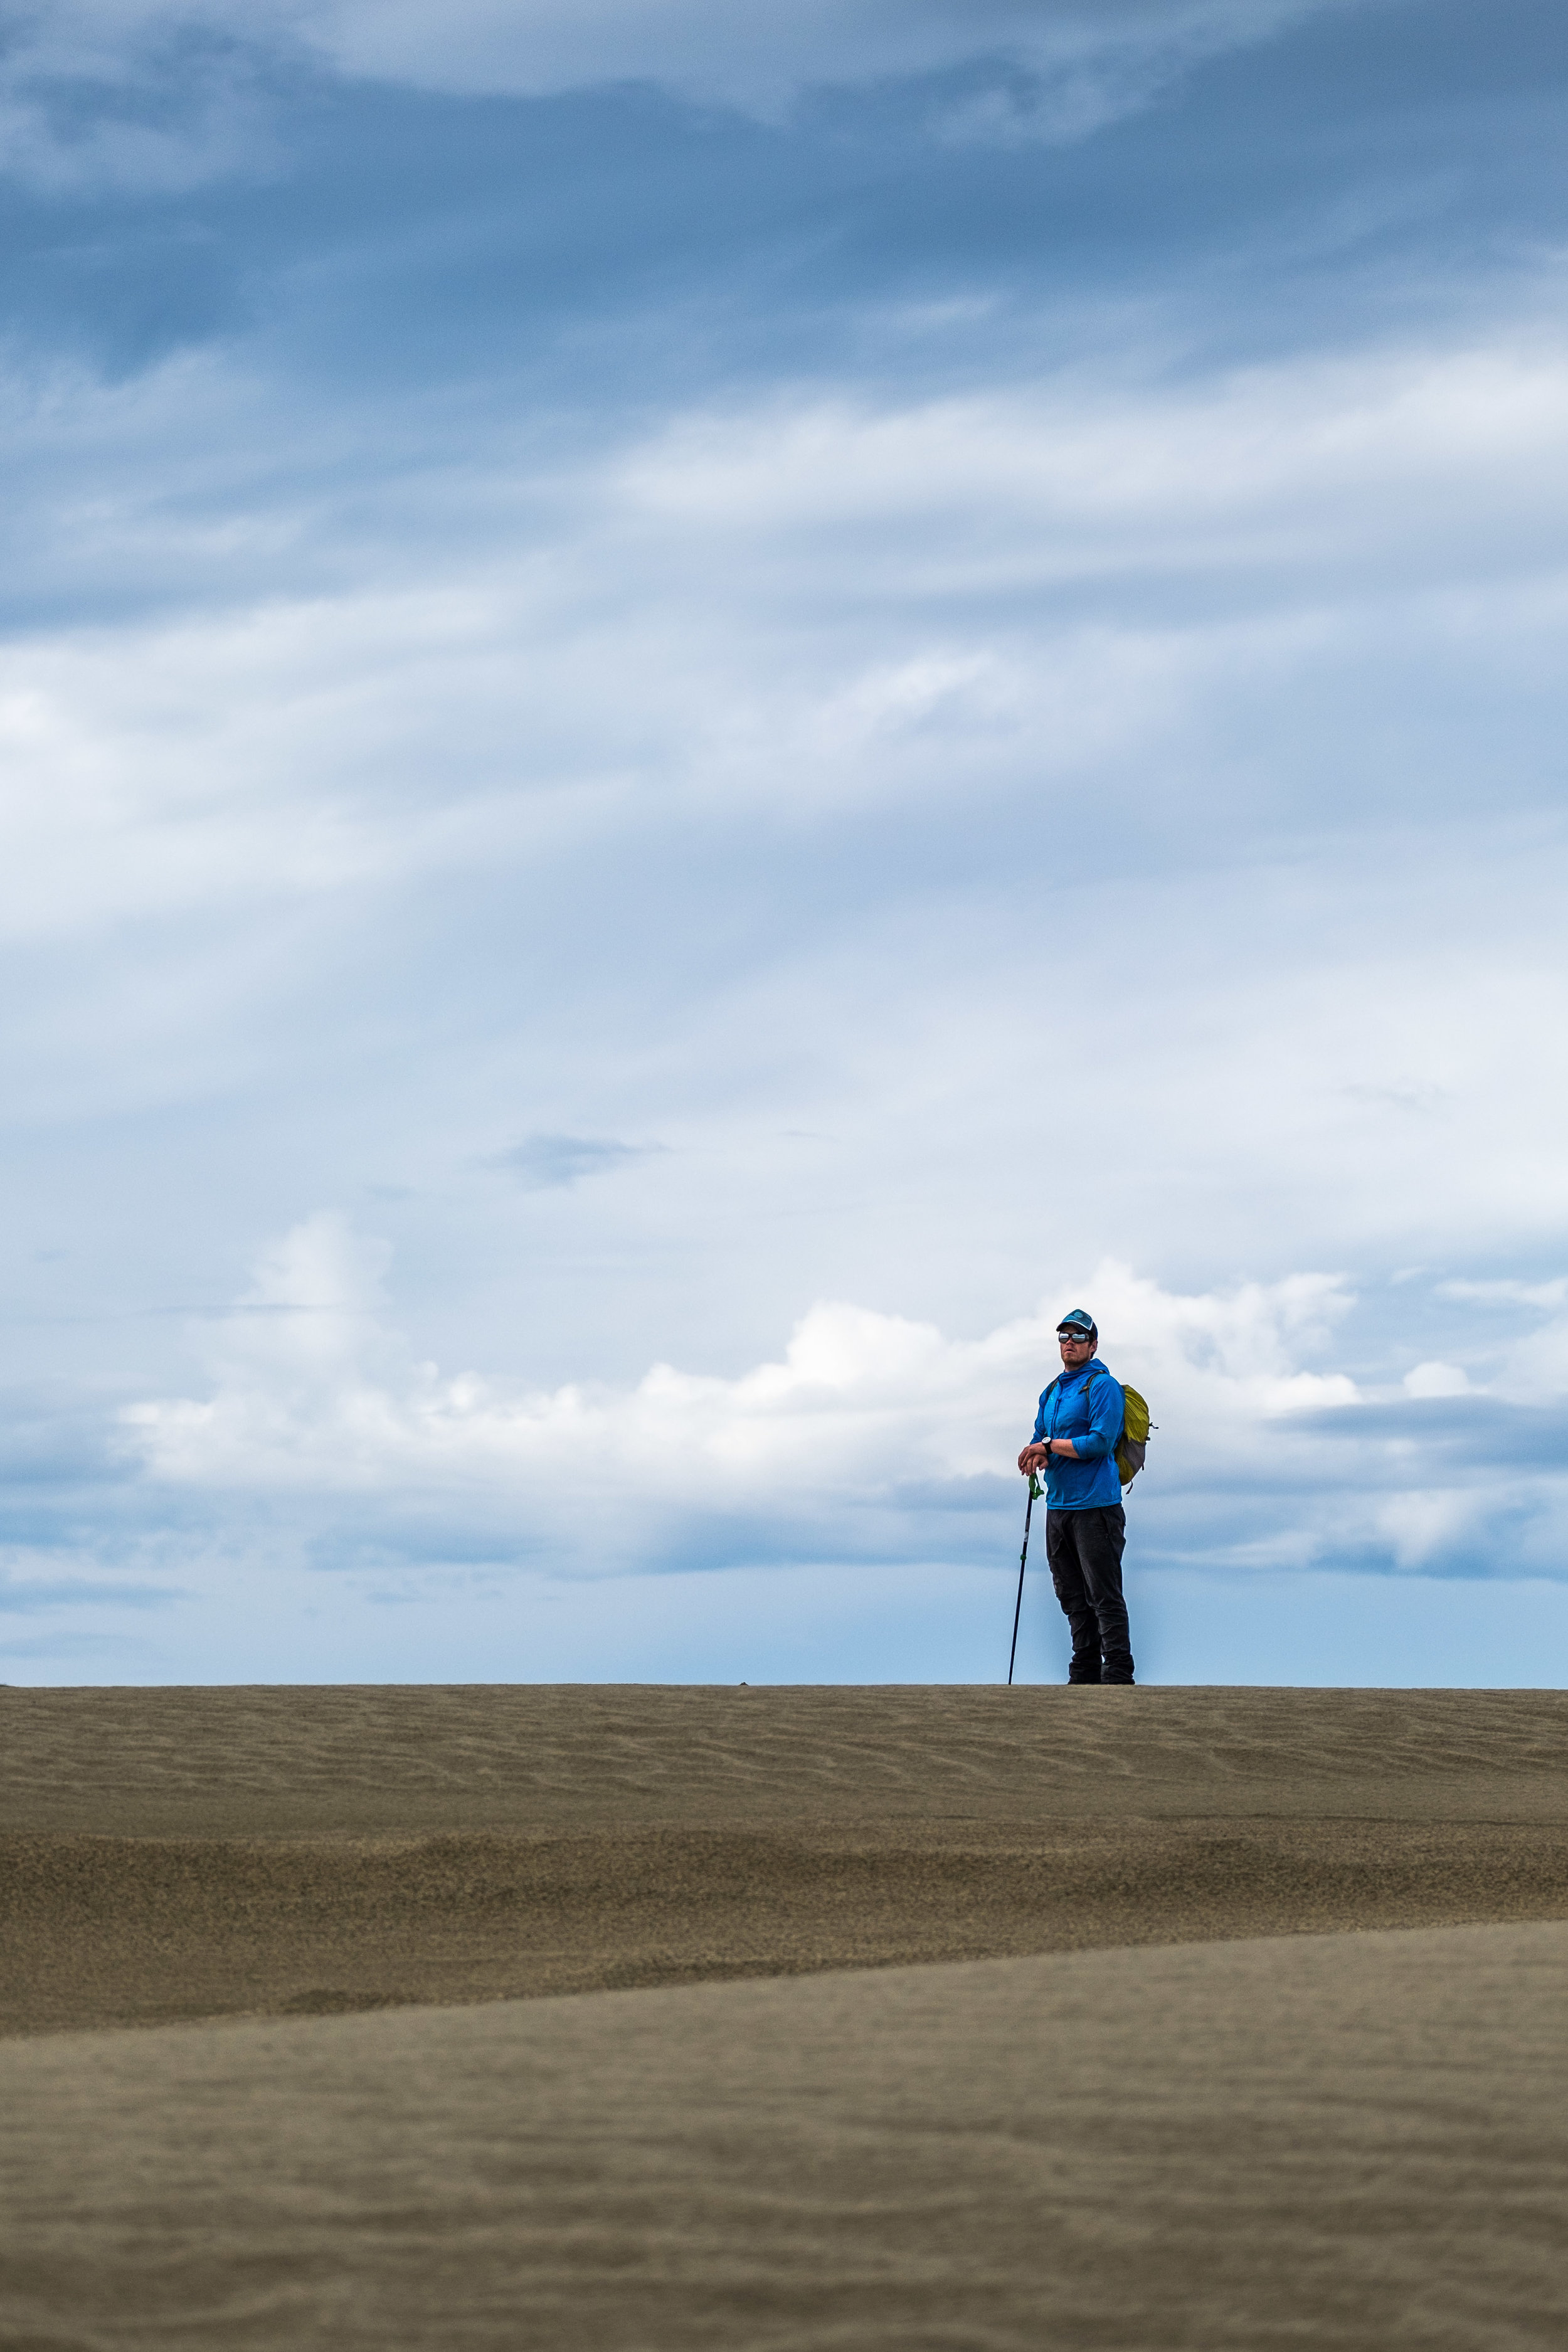 Sean being very stoic on the dune.